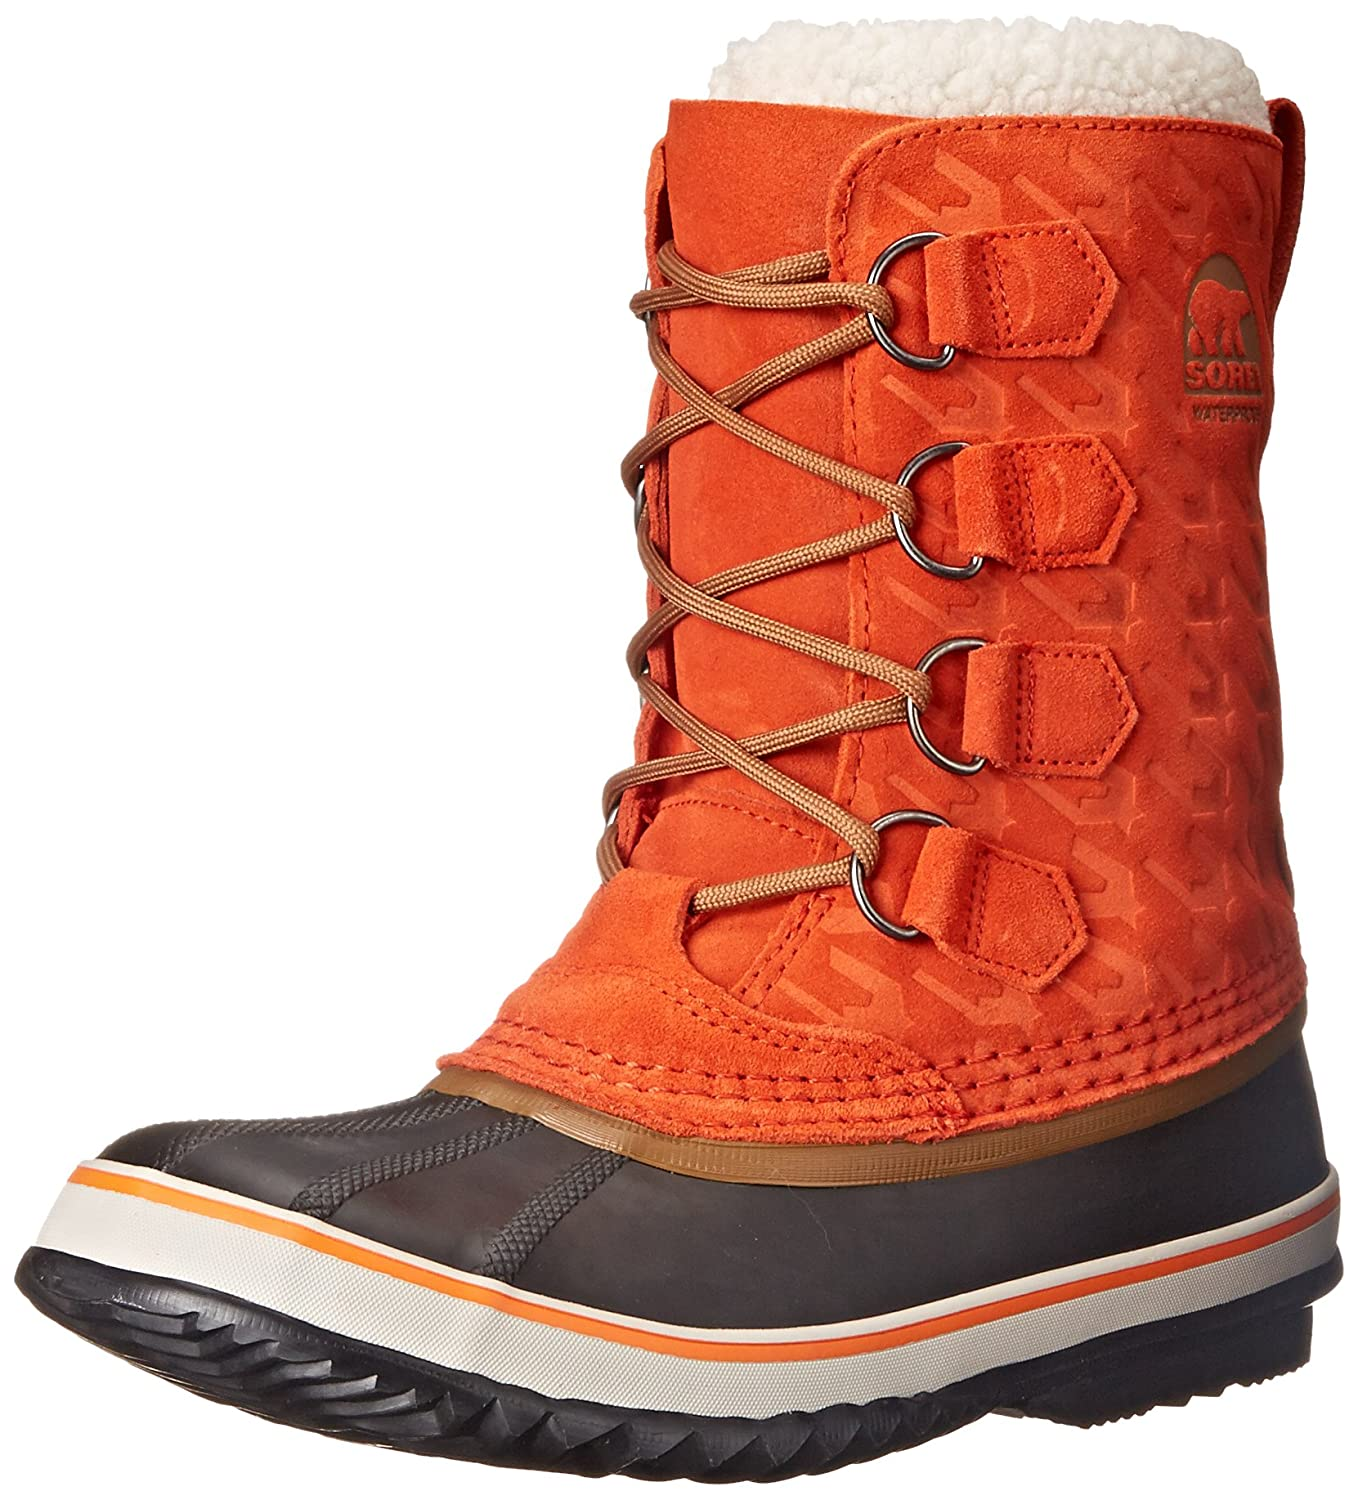 f6b8473d1bb Sorel Women's 1964 Pac Graphic 15 Cold Weather Boot lovely ...